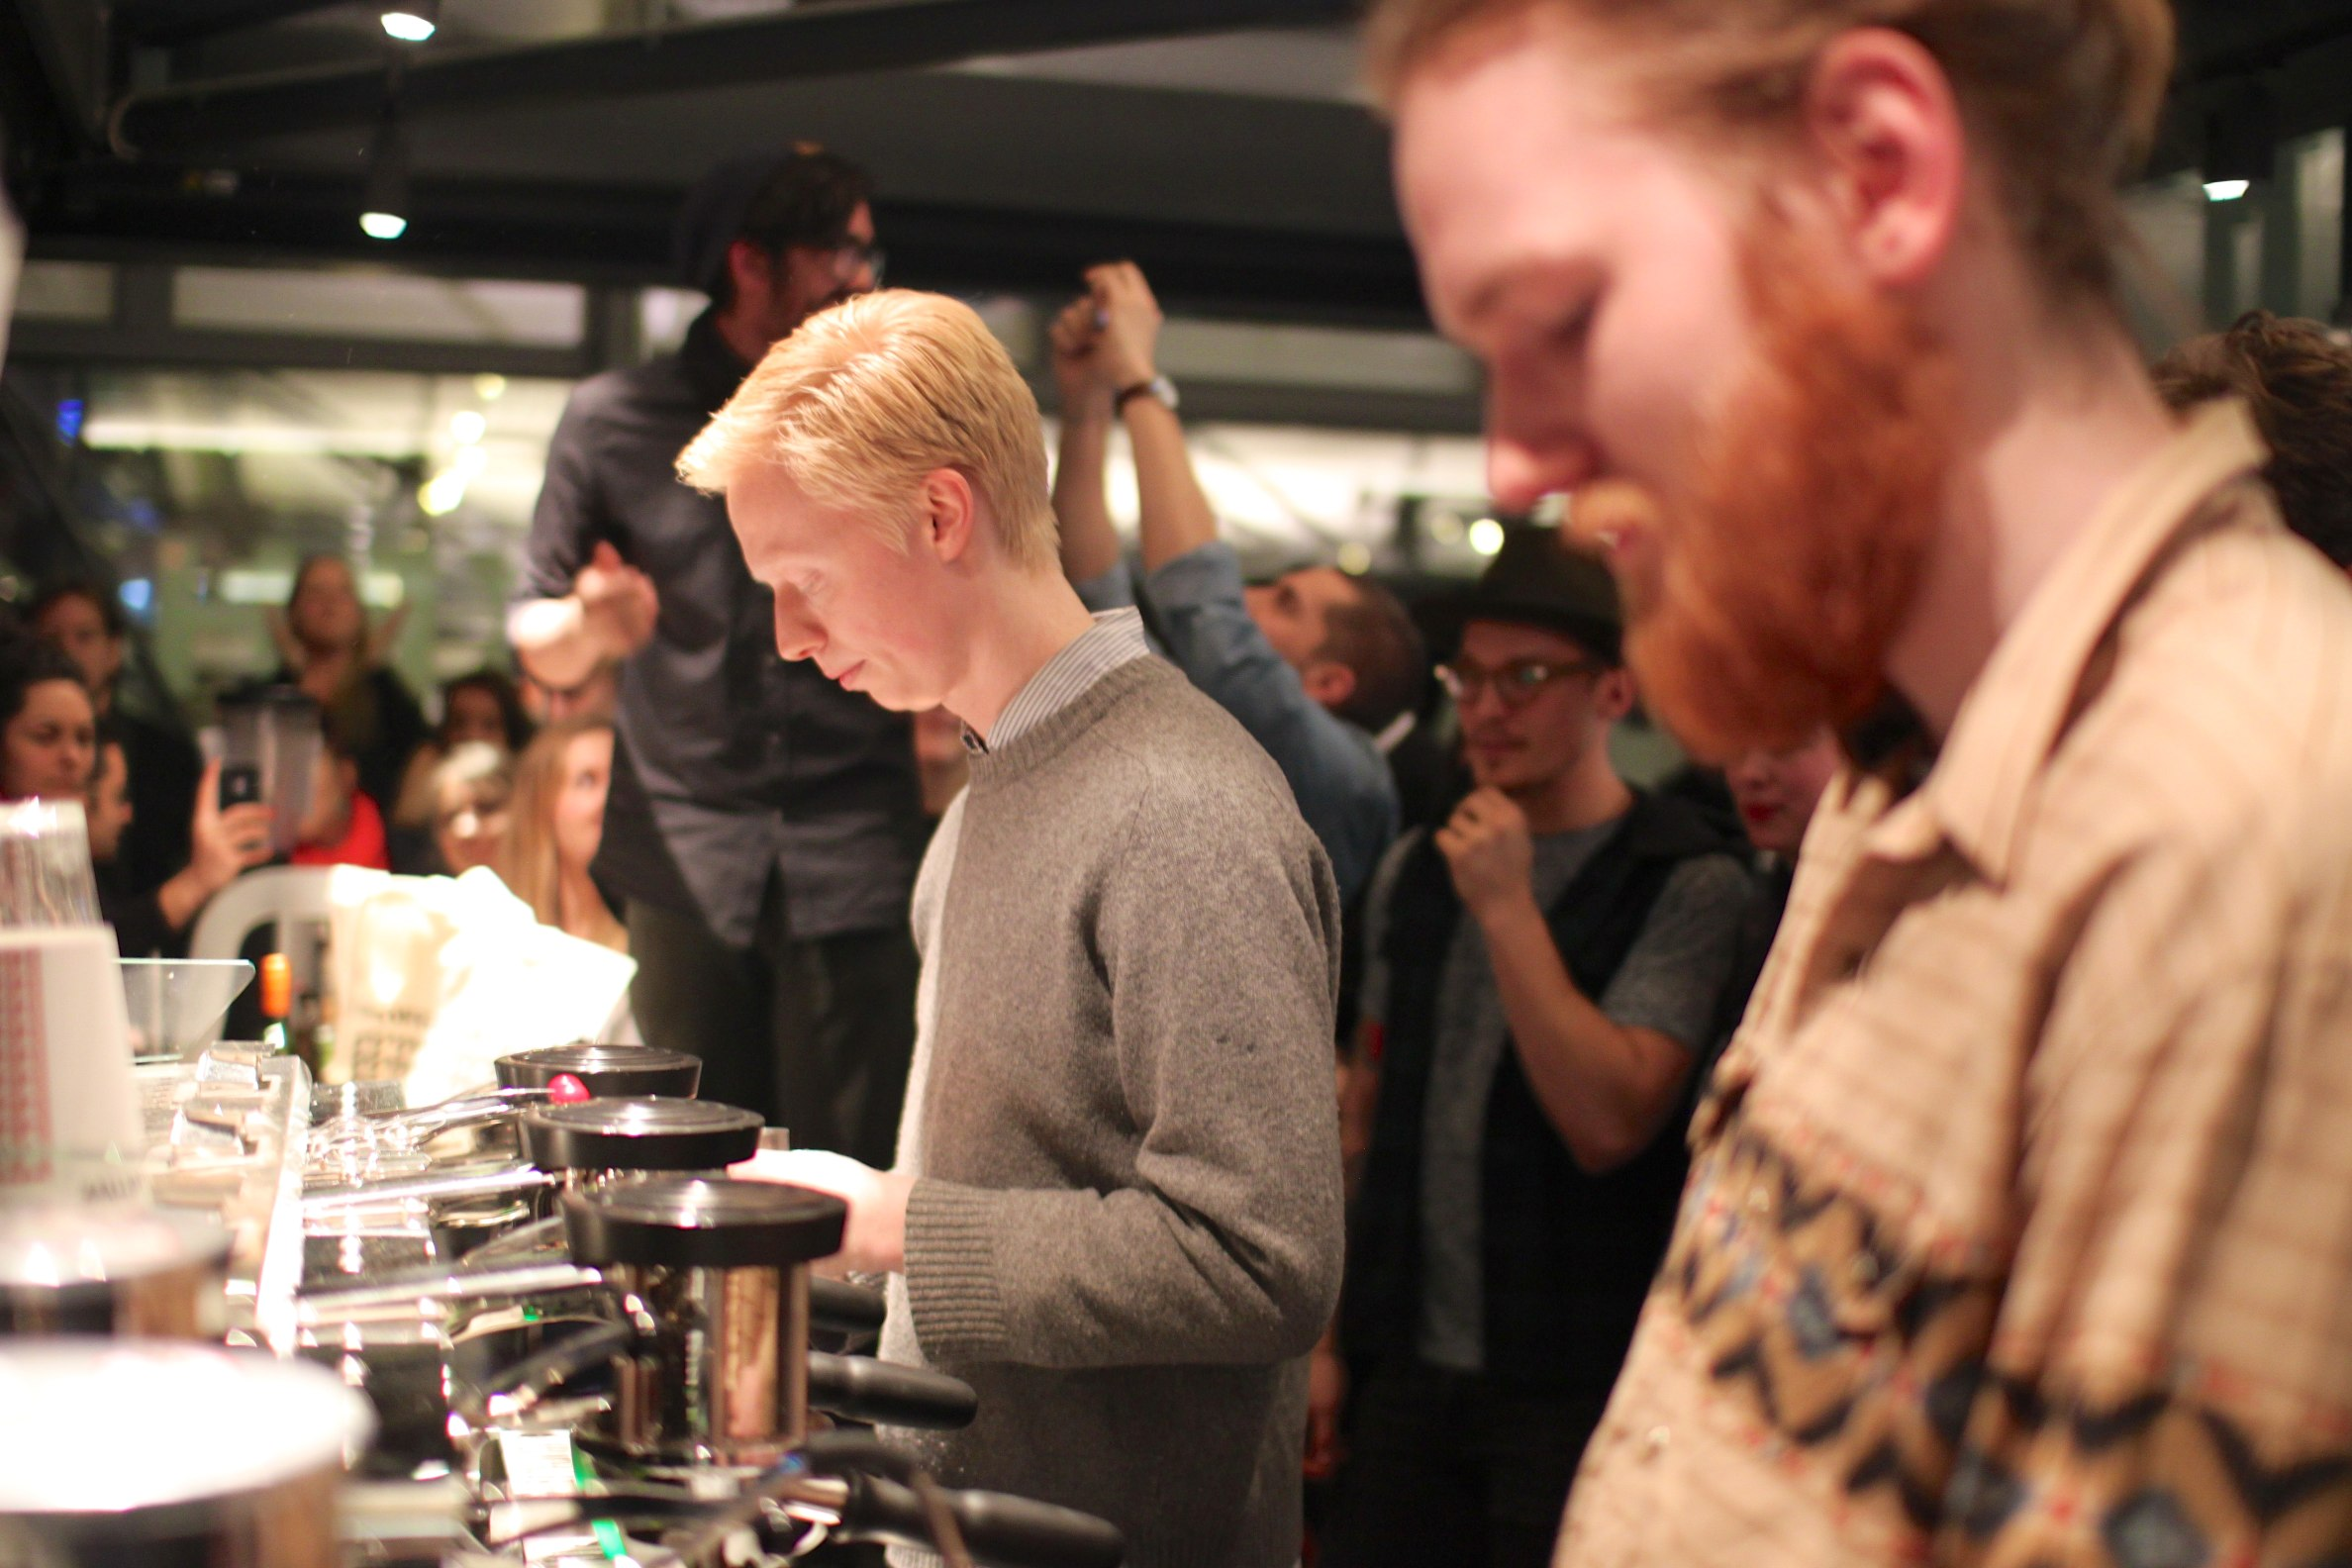 Pictures from the Latte Art Throwdown